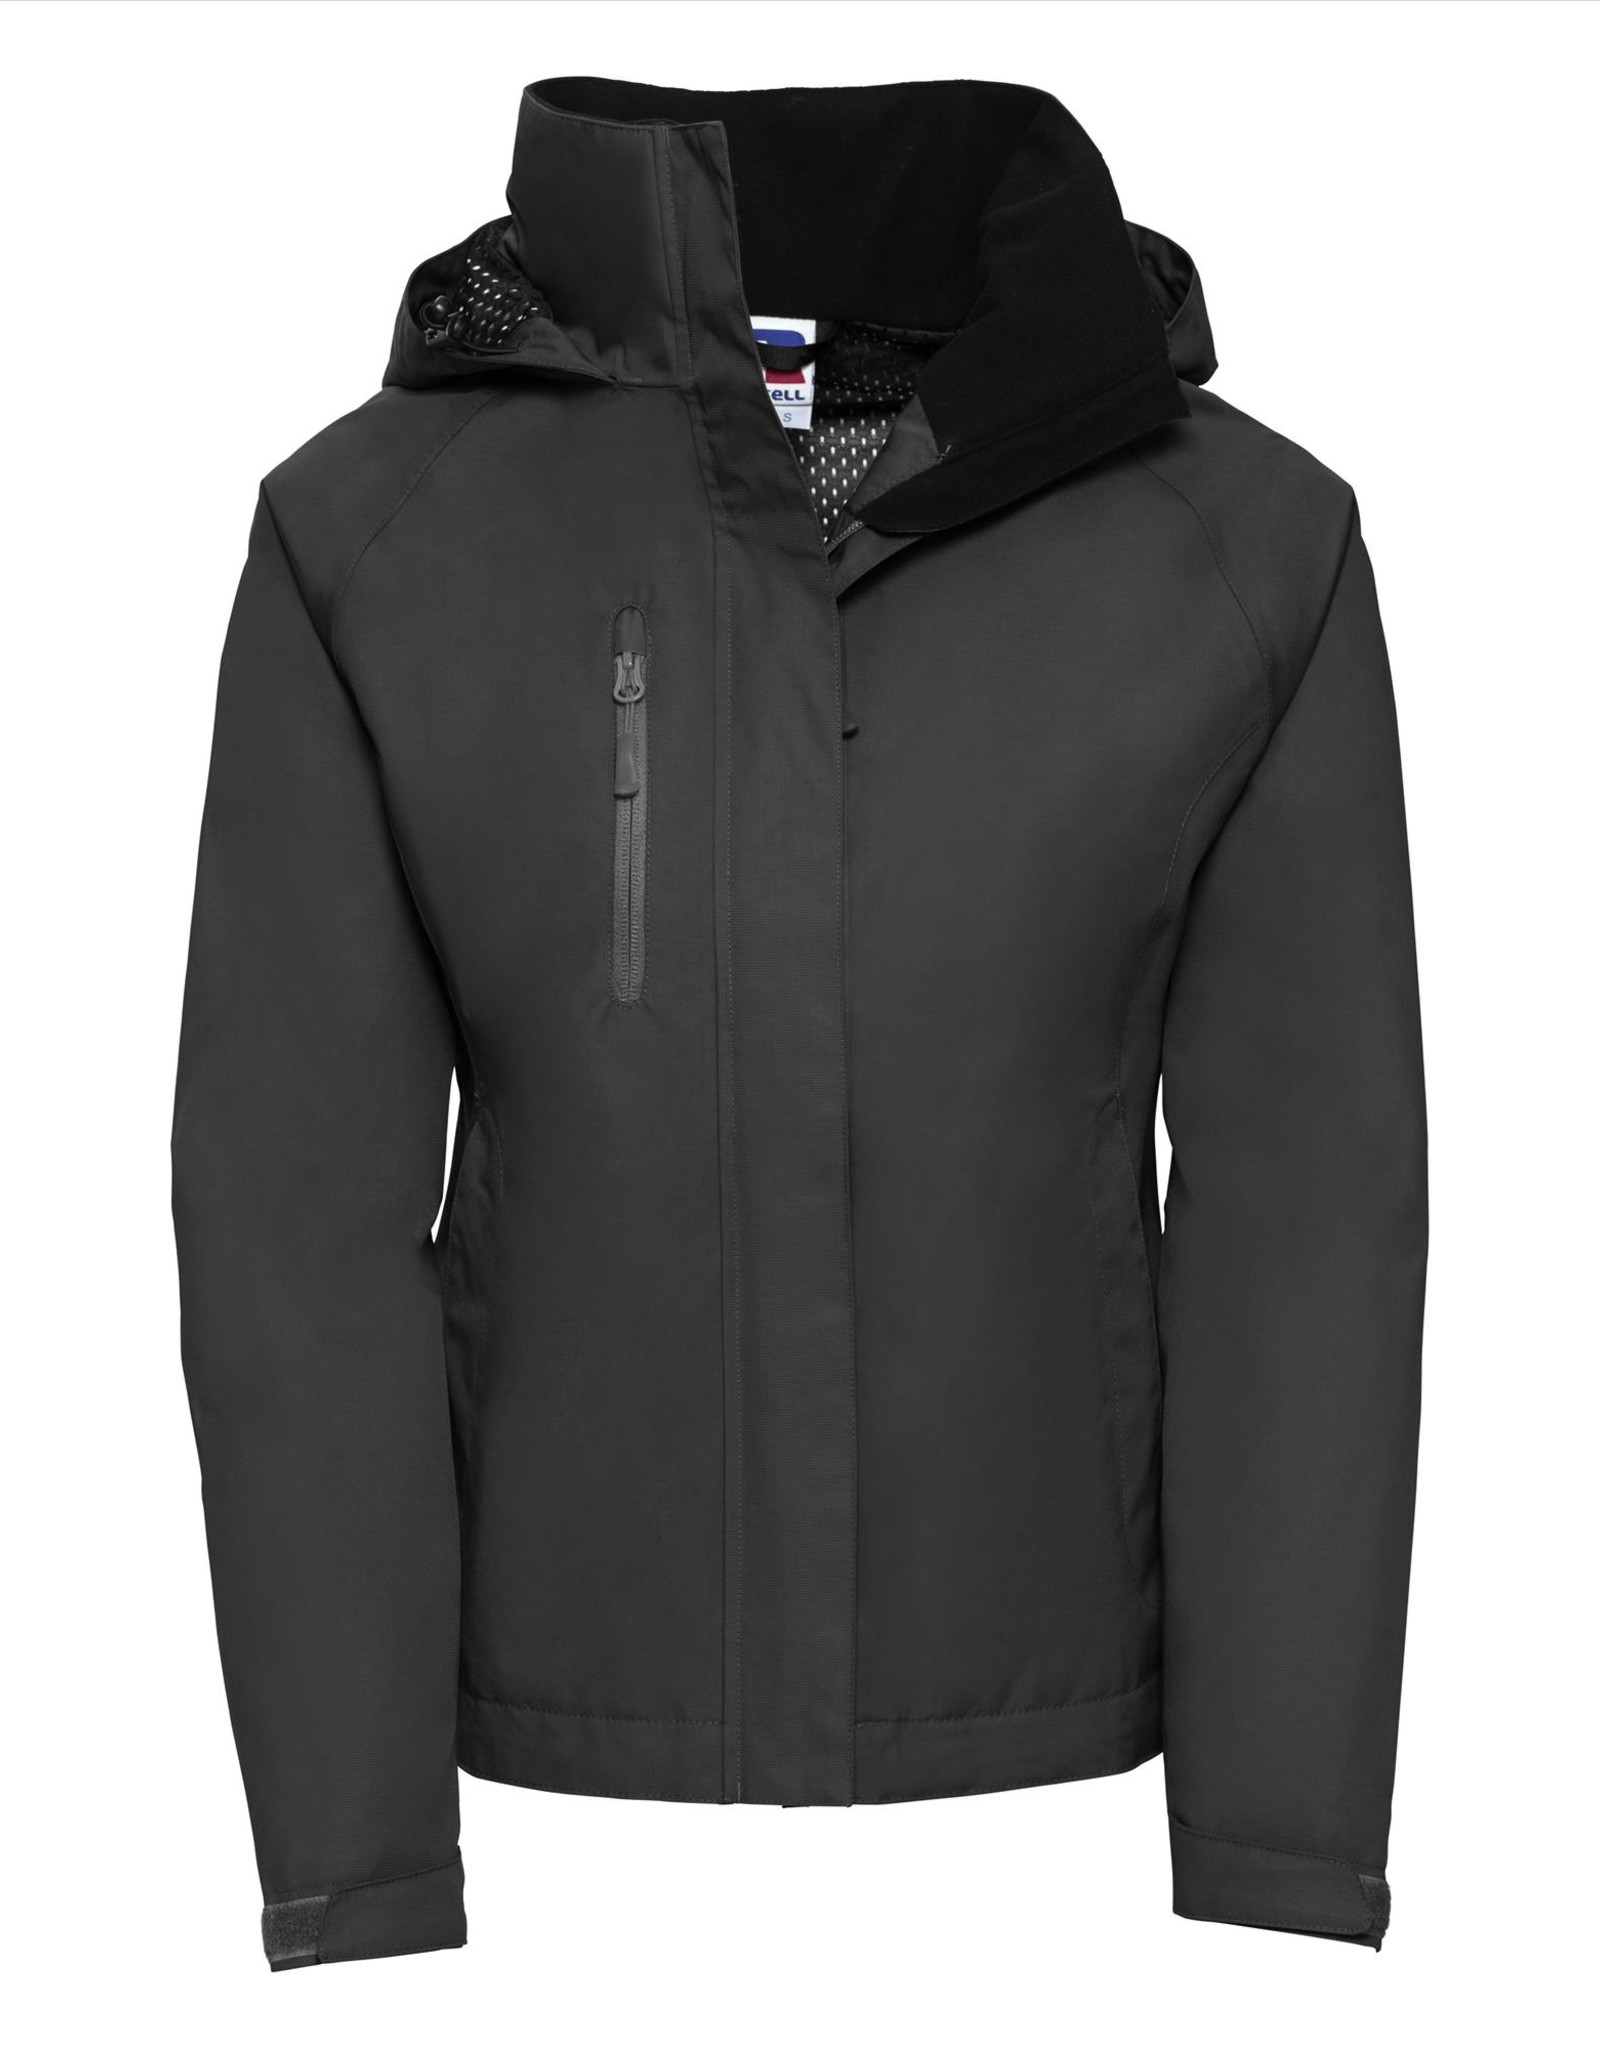 Russell DAMES JACK Soft shell antraciet